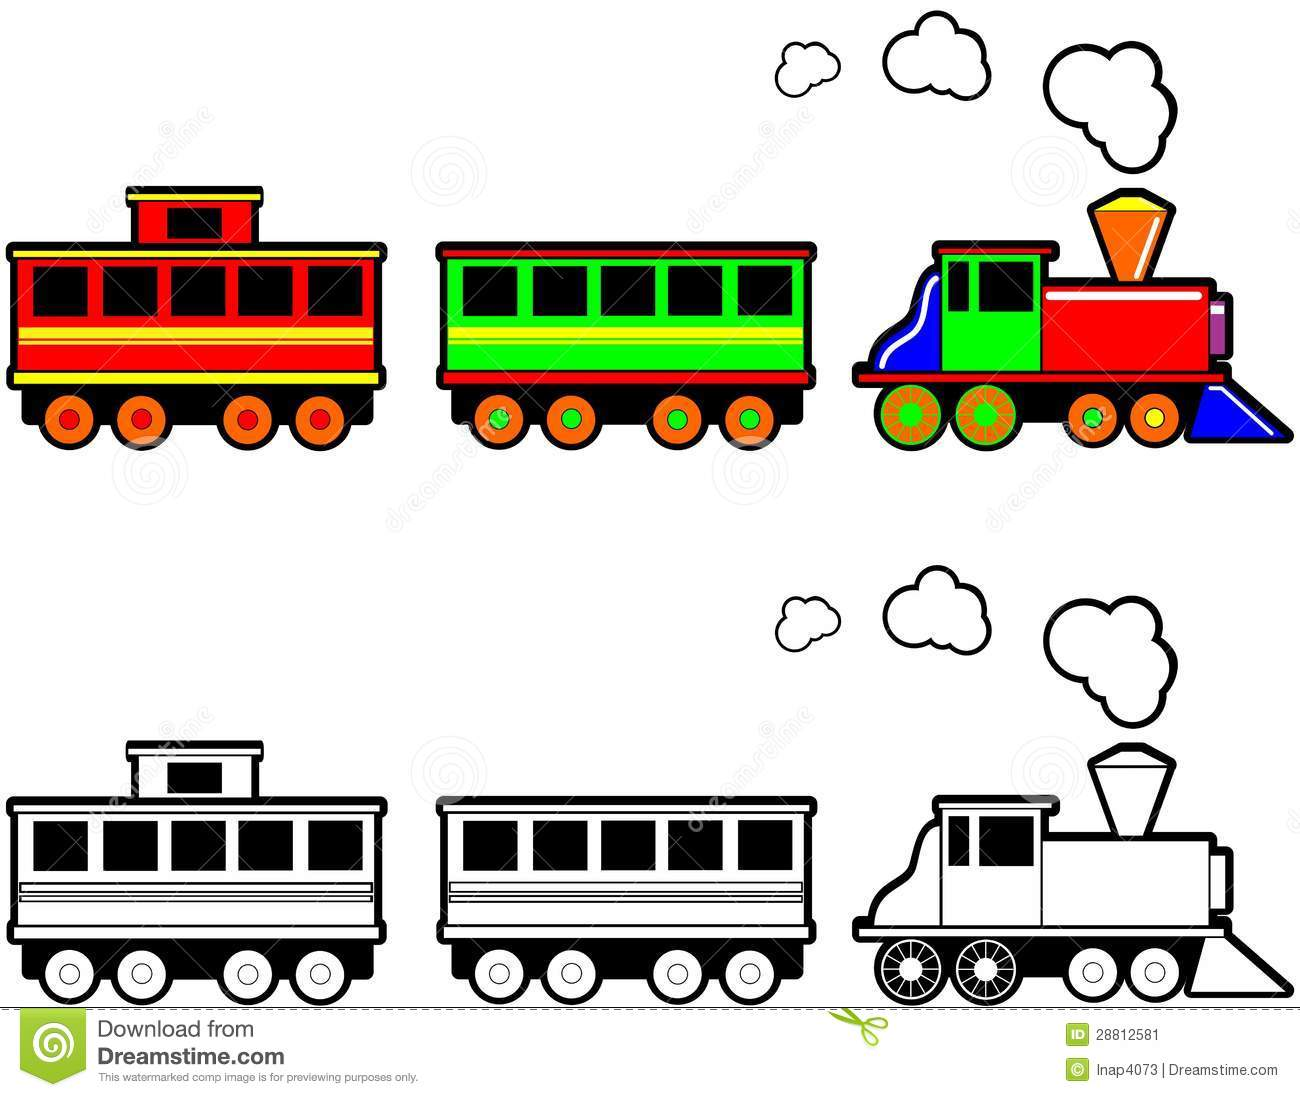 Cartoon illustration of a toy steam engine train in color and black ...